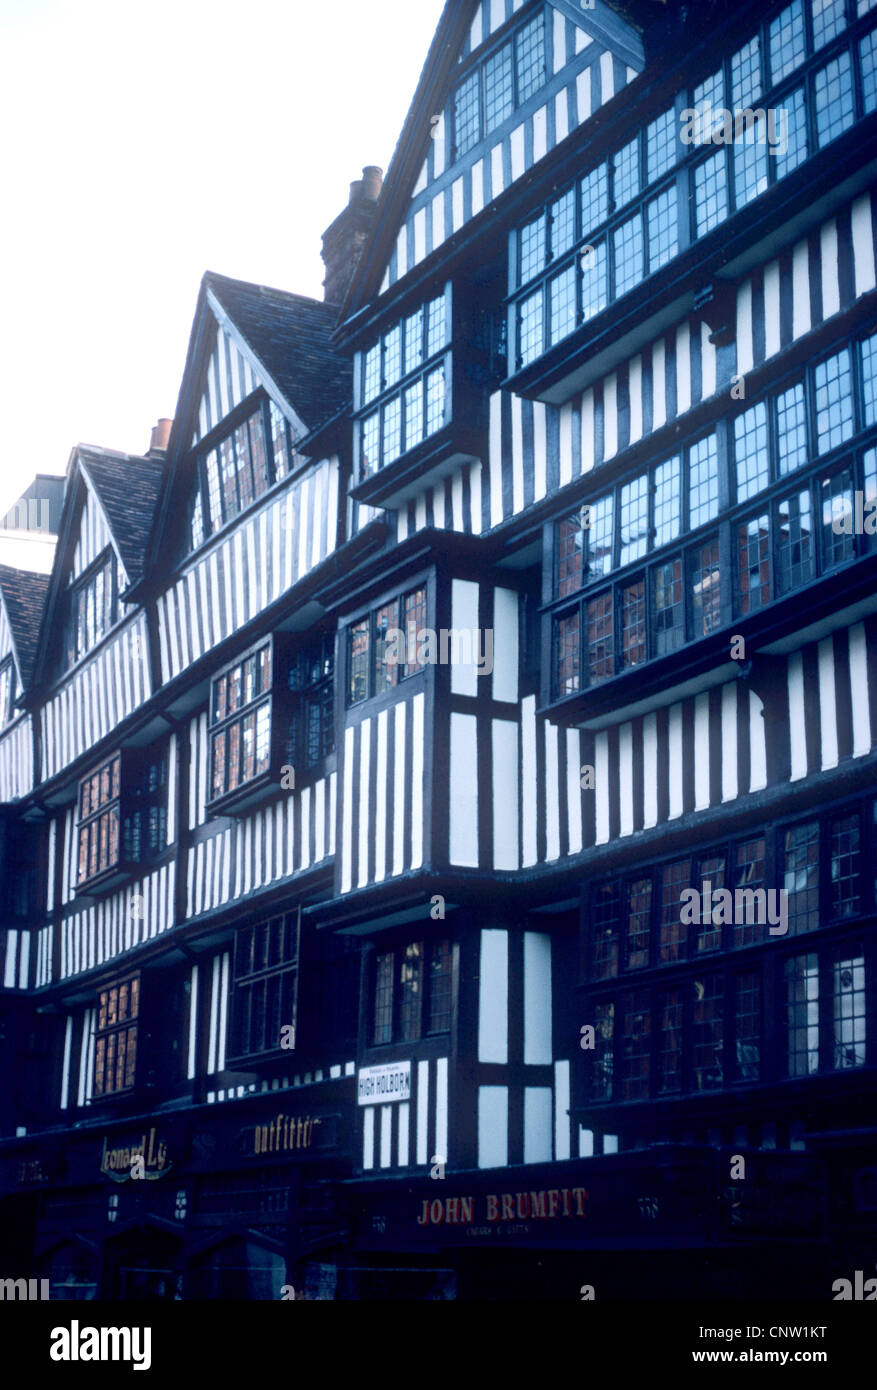 Staple Inn High Holborn London England UK Black And White Timbered Building Buildings